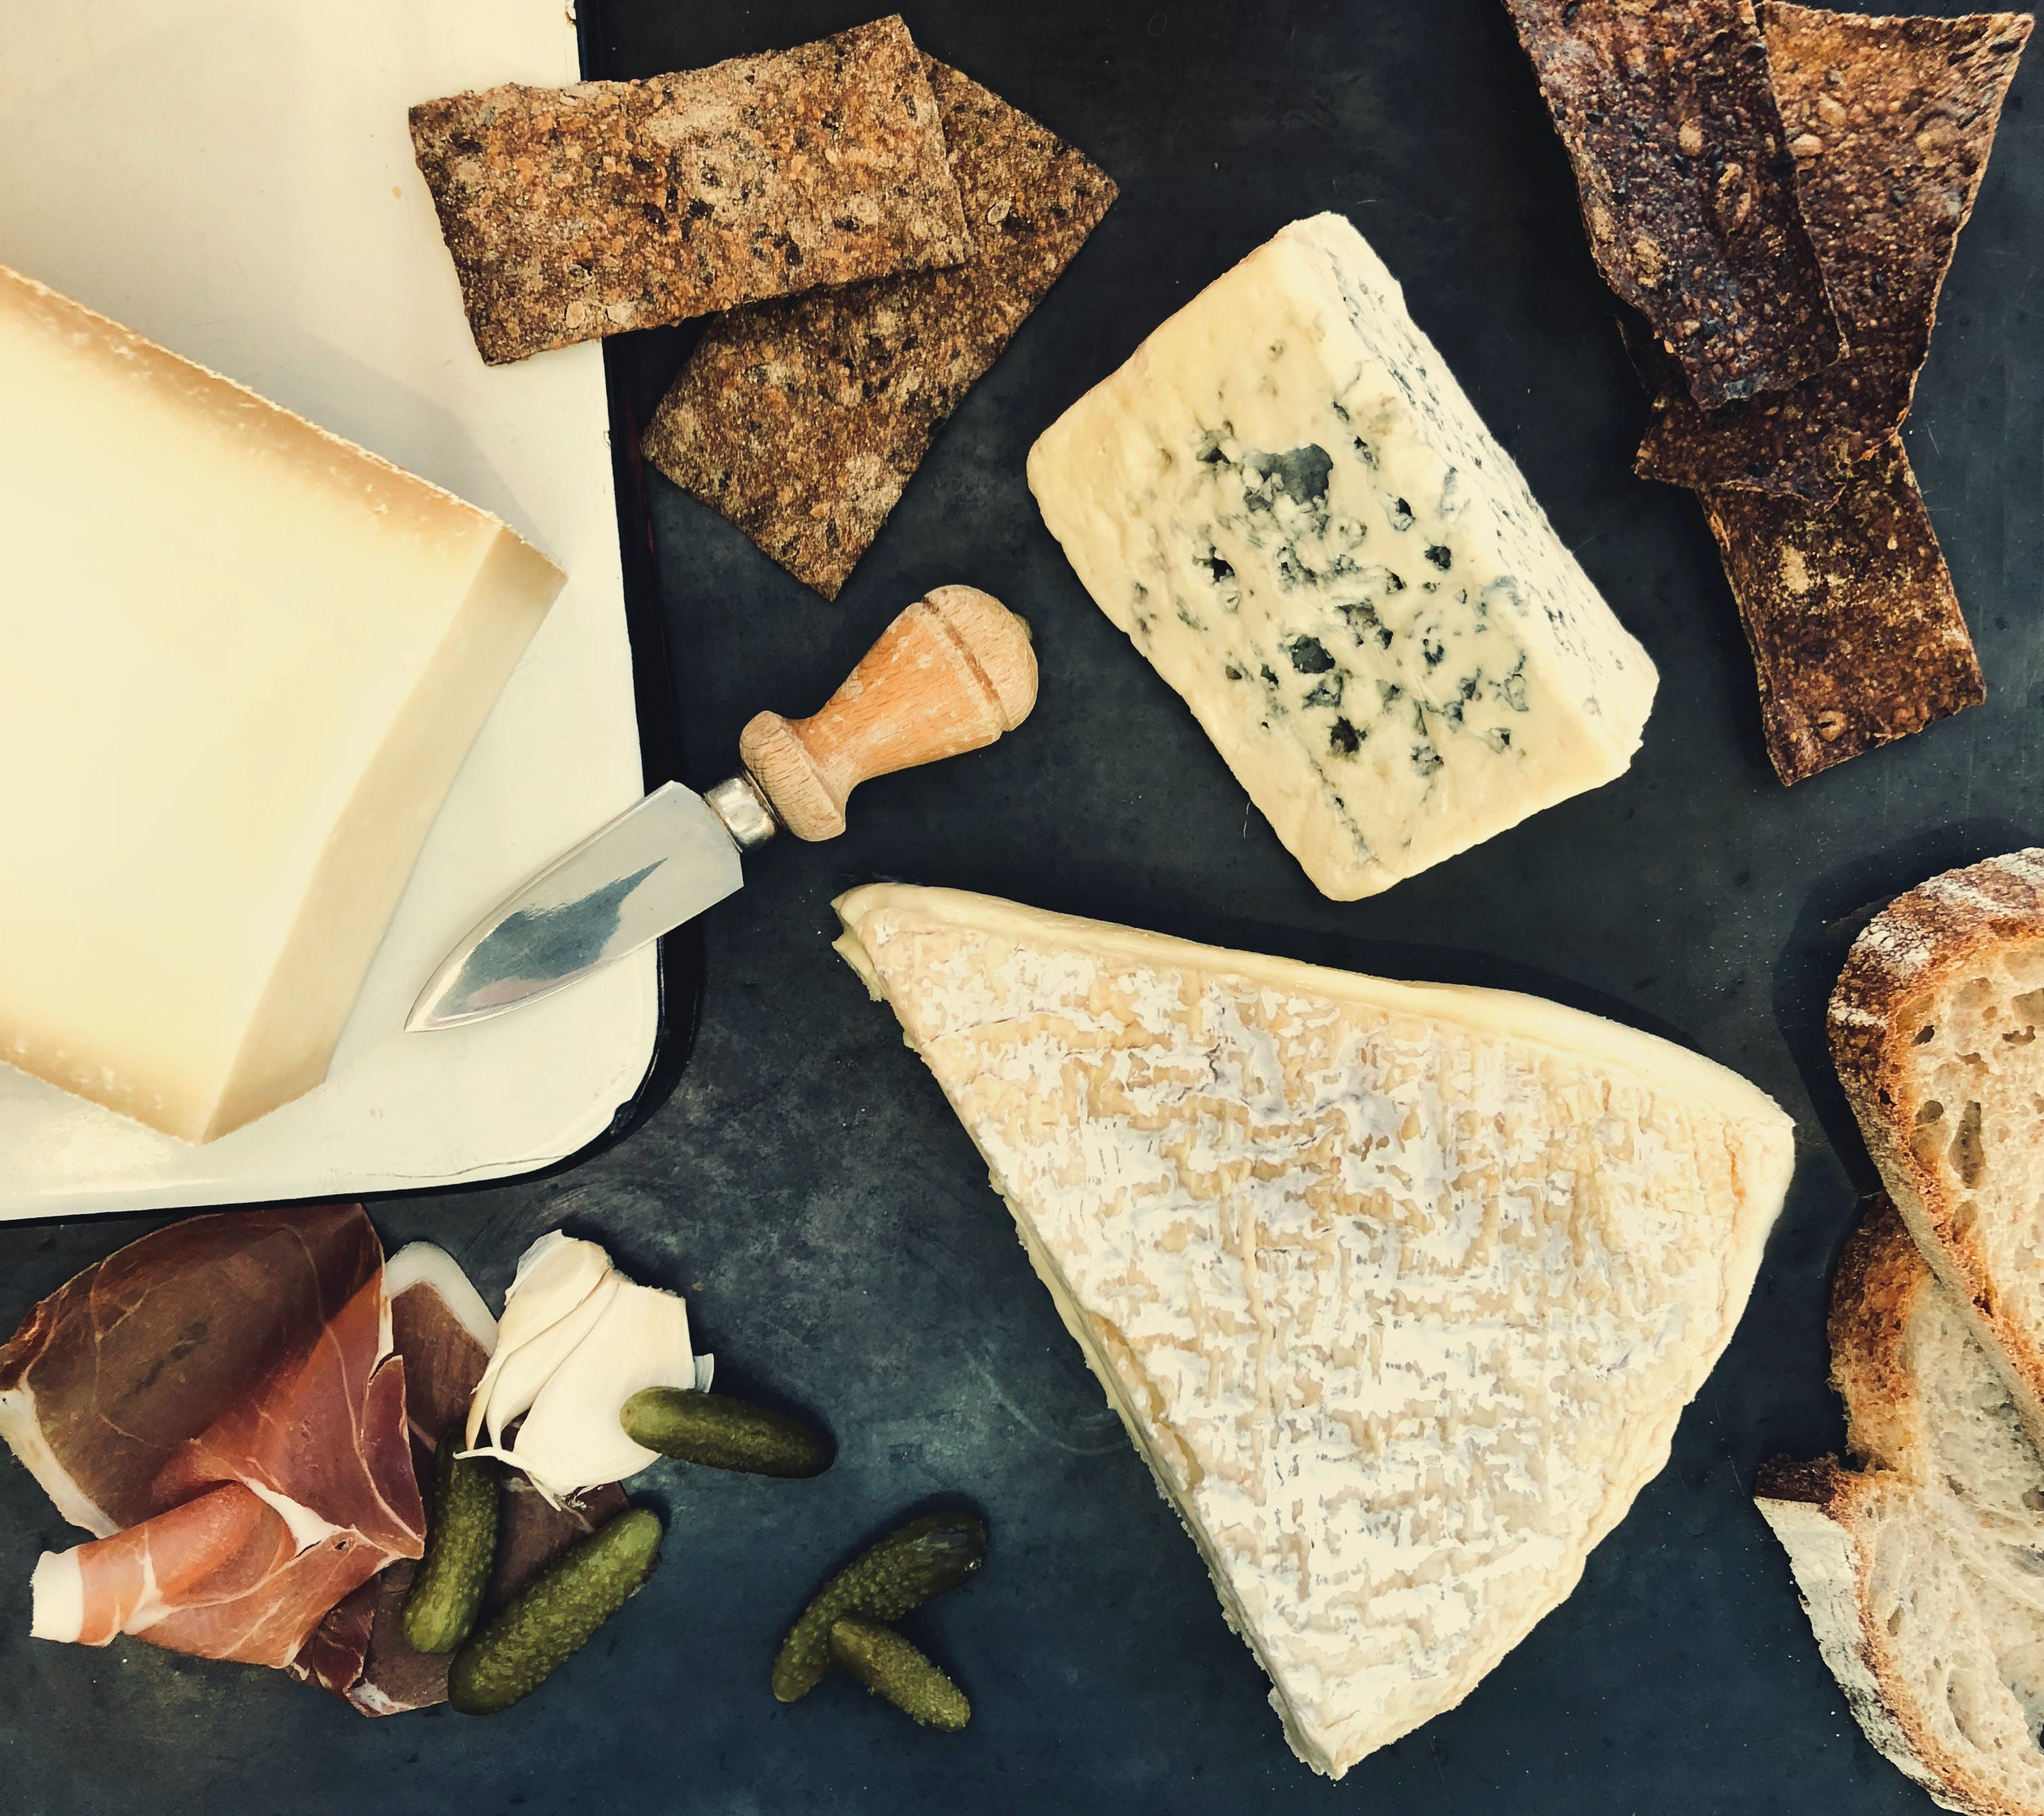 Cheese gifts - 3 Cheeses